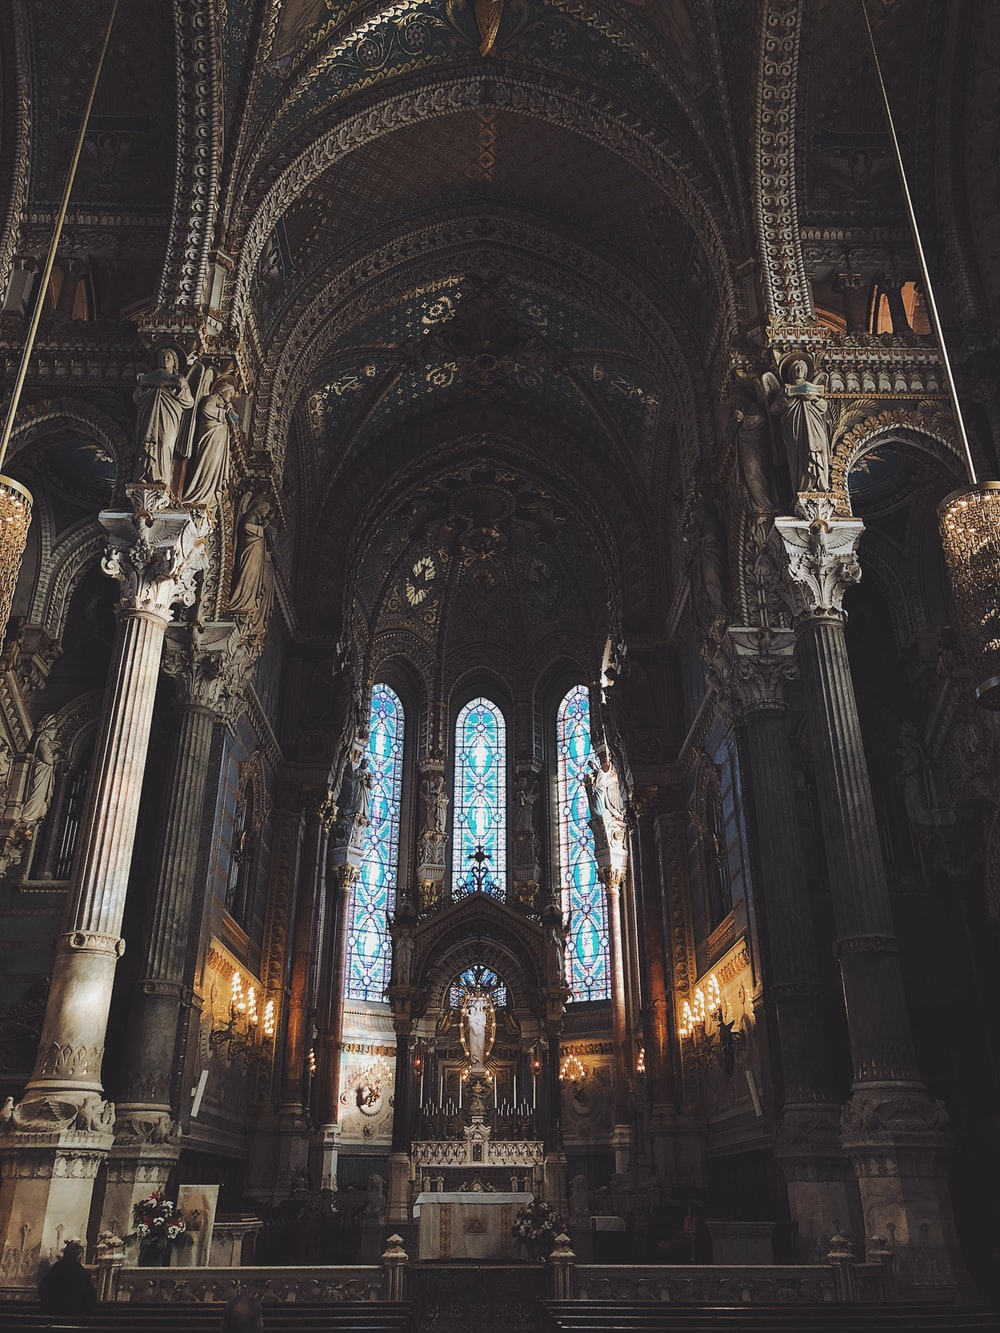 inside church view with no people